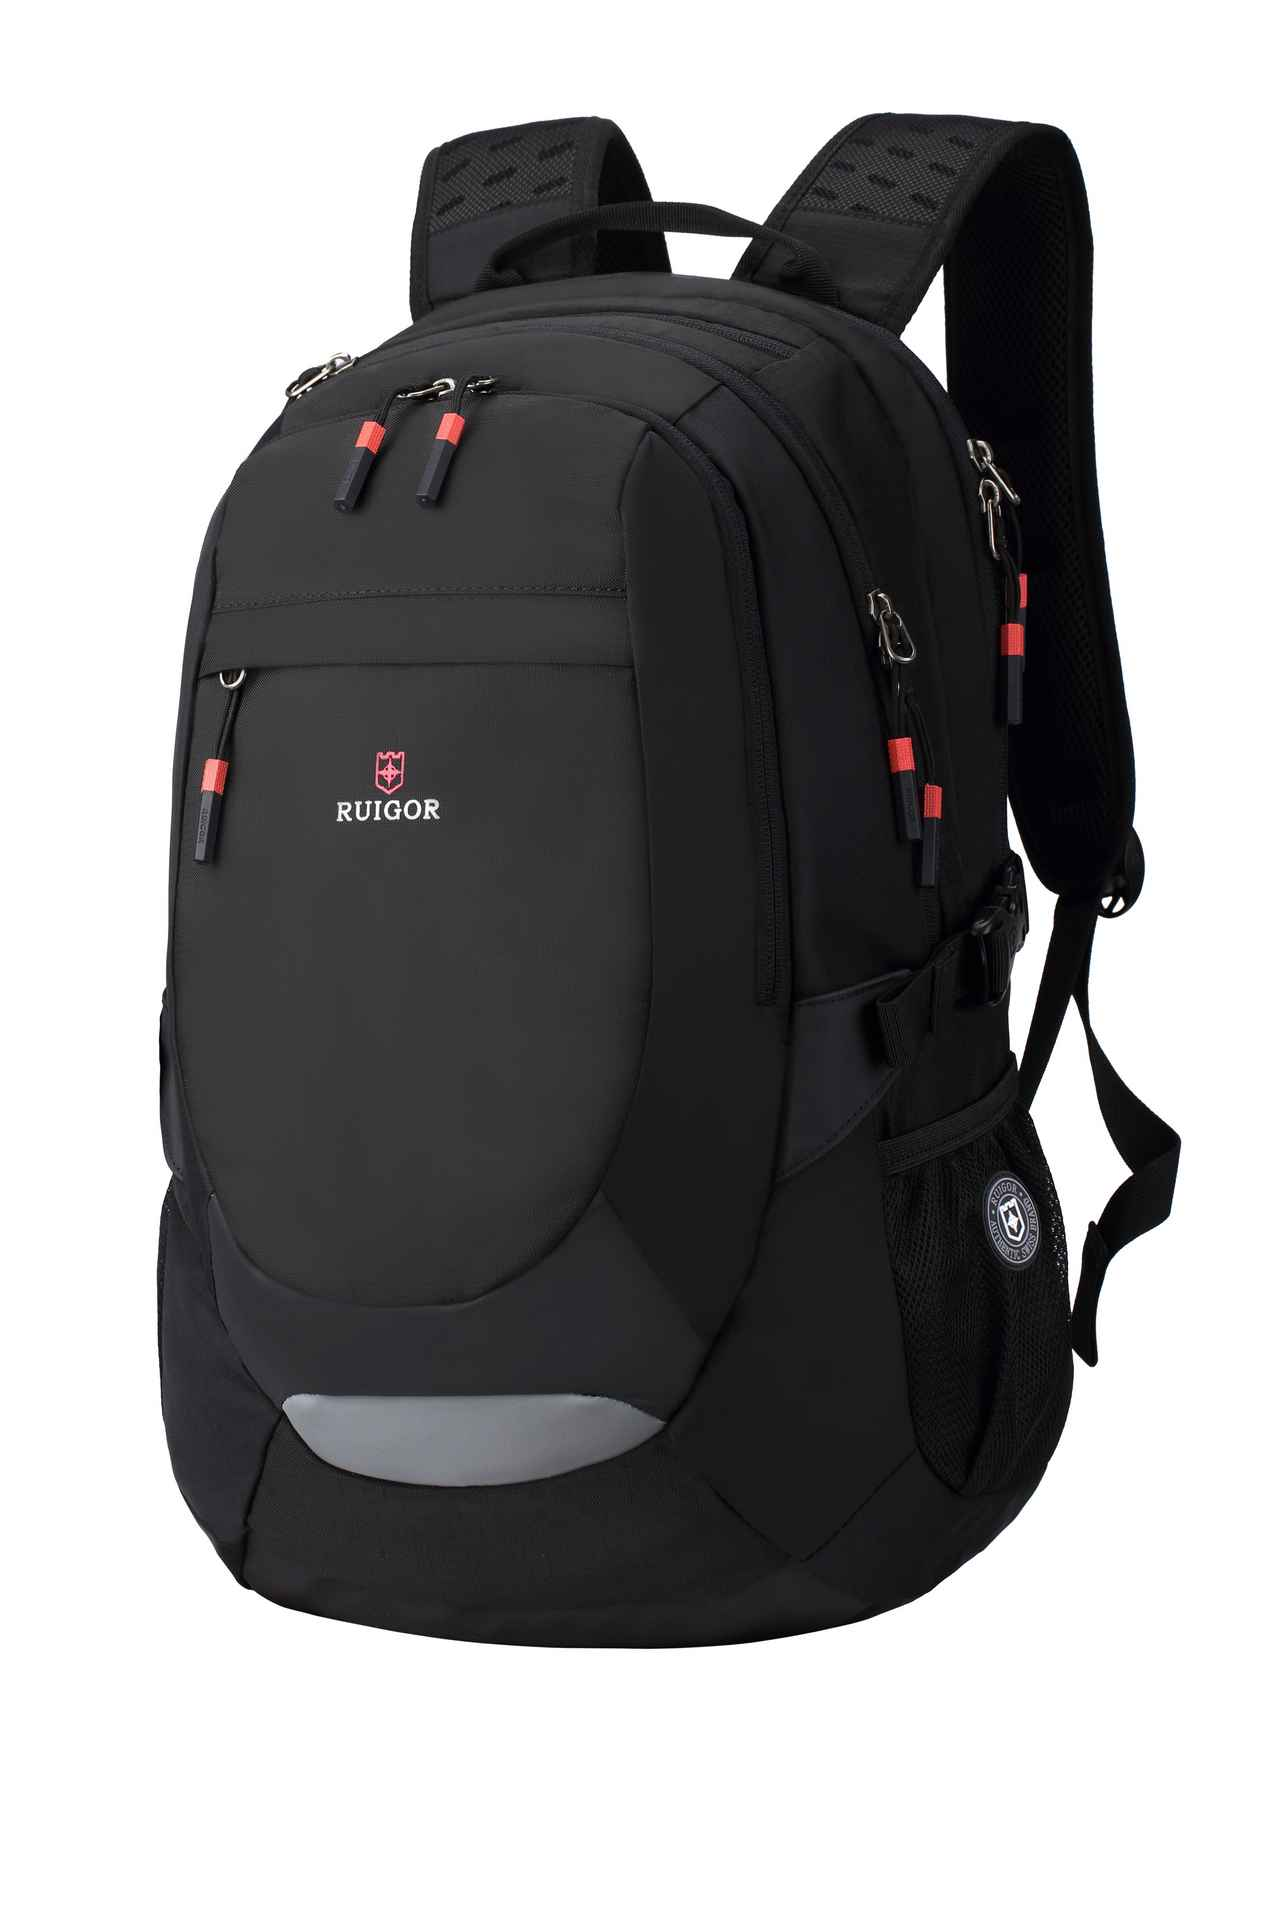 RUIGOR ACTIVE 29 Laptop Backpack Black